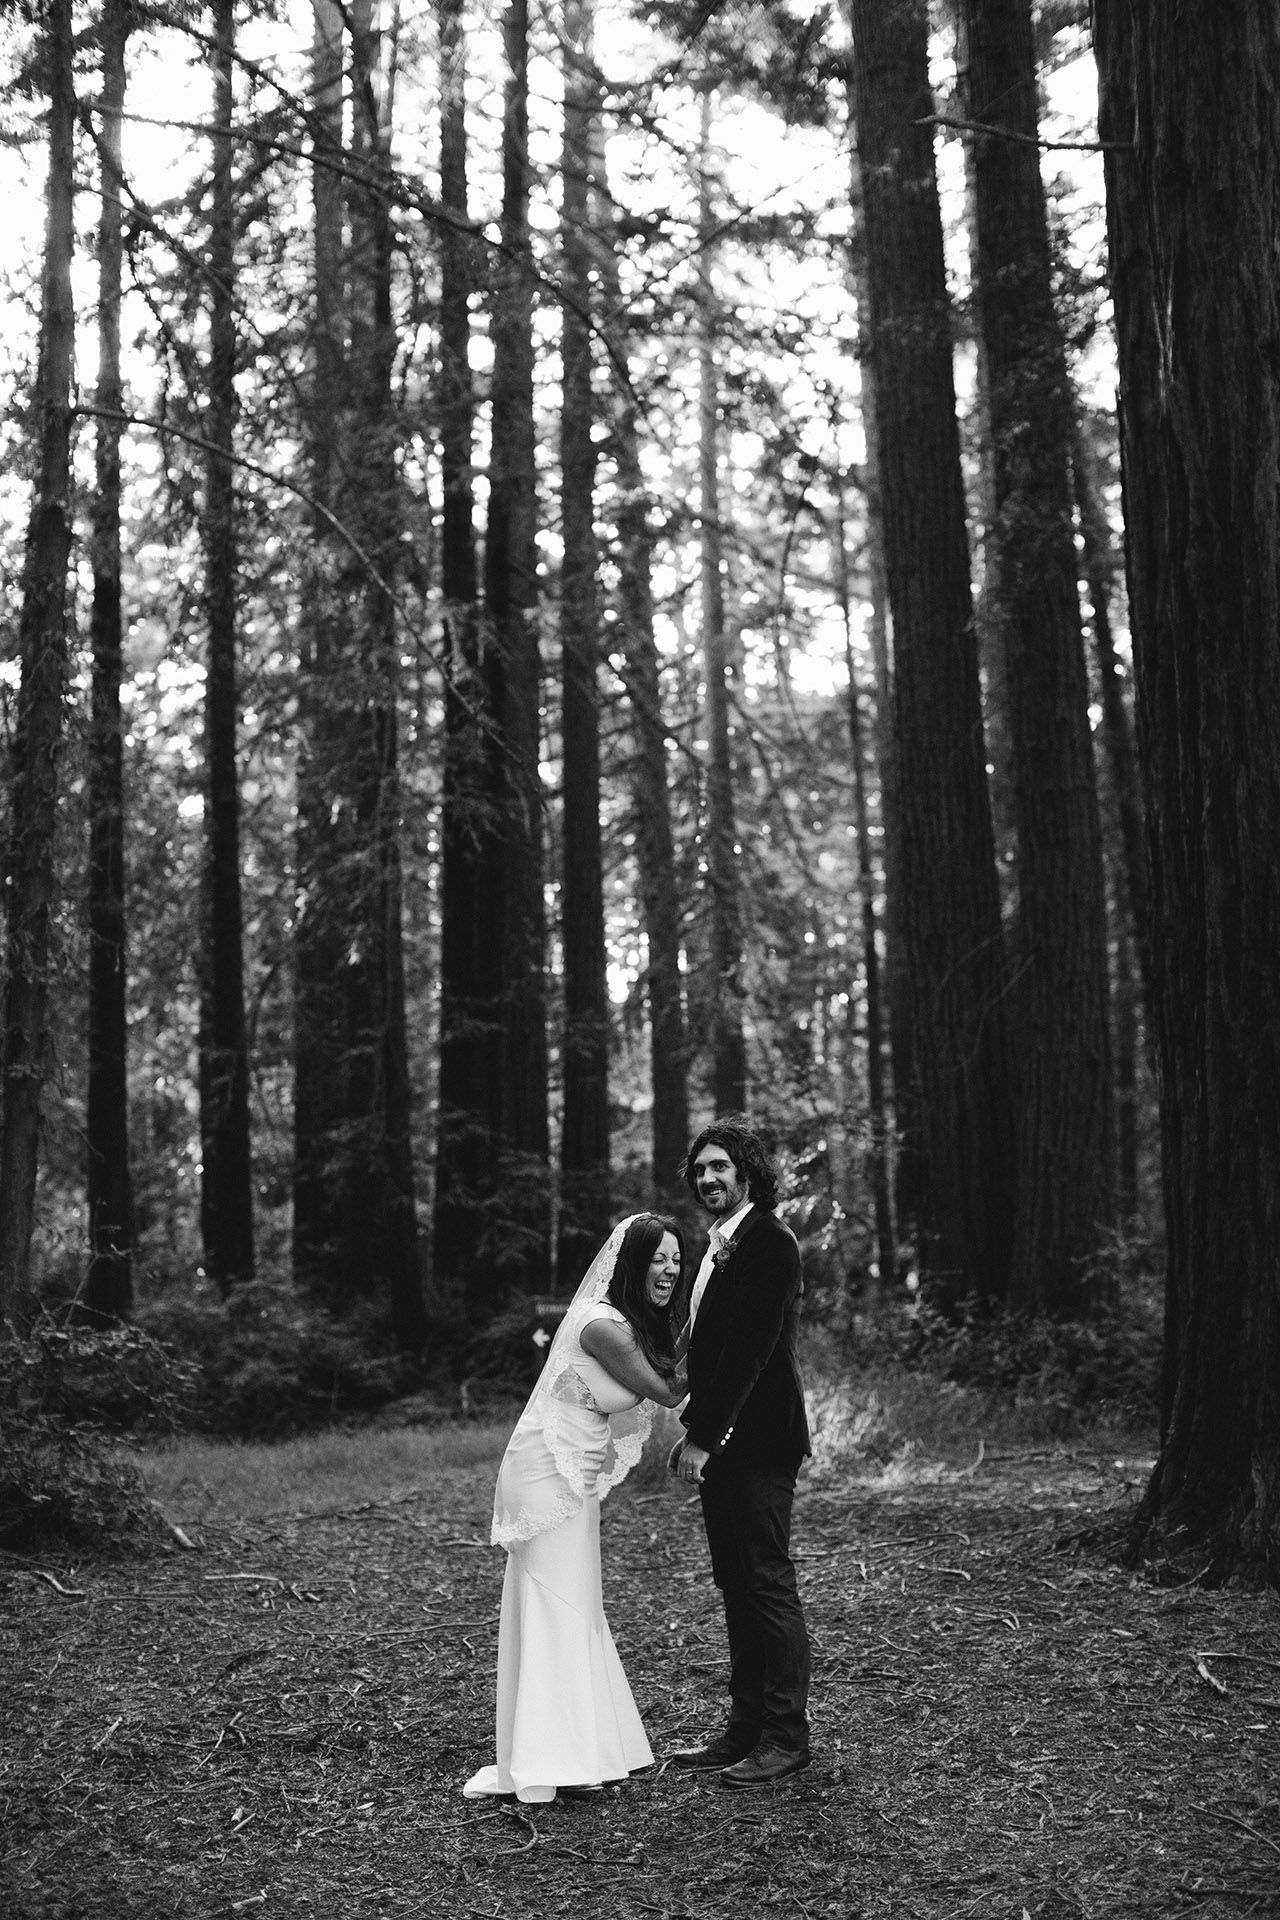 Roberts Regional Park Wedding In Oakland California